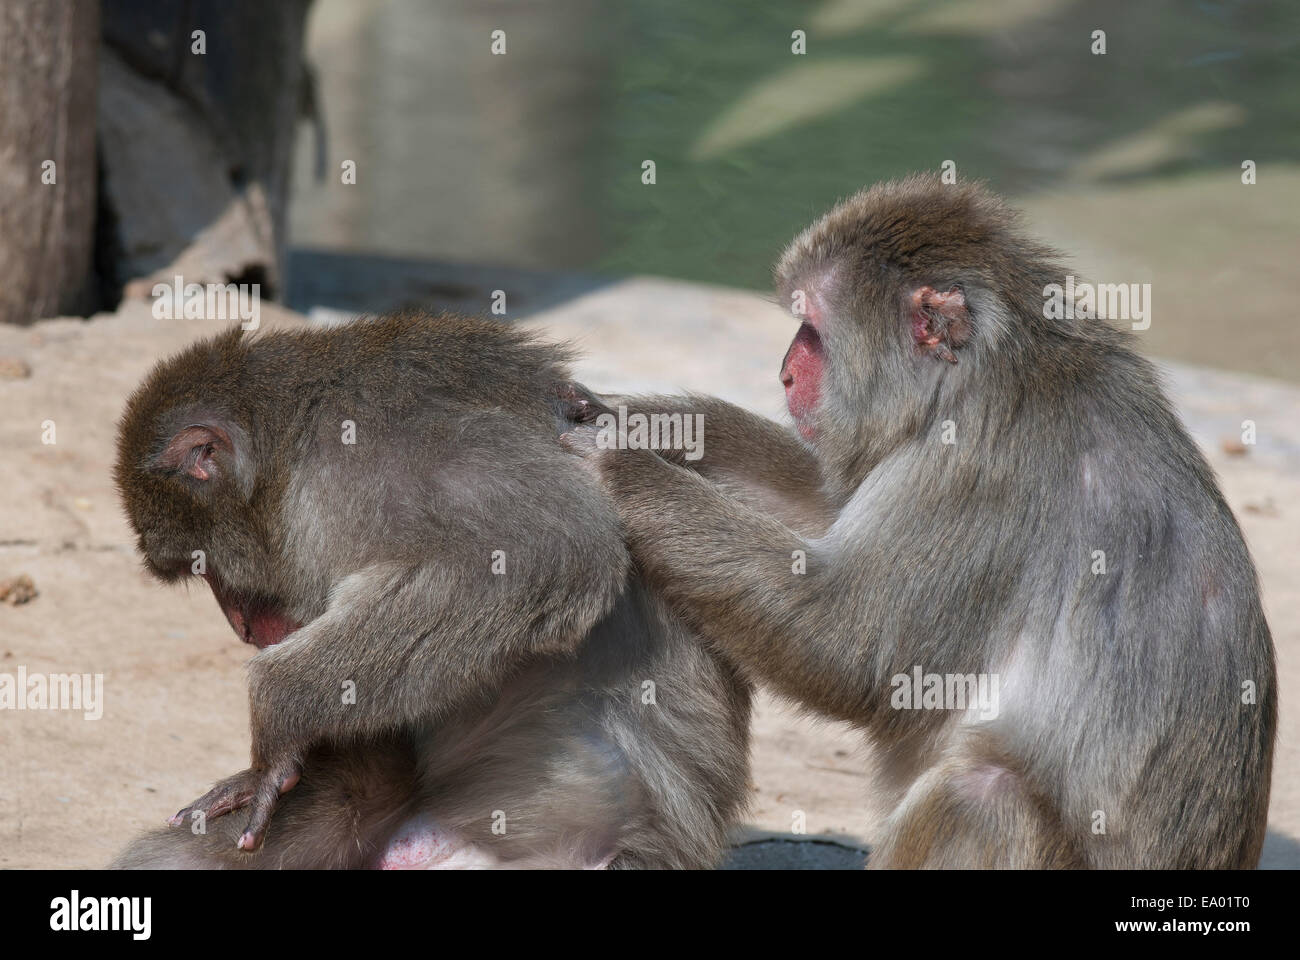 Japanese macaques grooming, Macaca fuscata, Bioparco, Rome, Italy - Stock Image